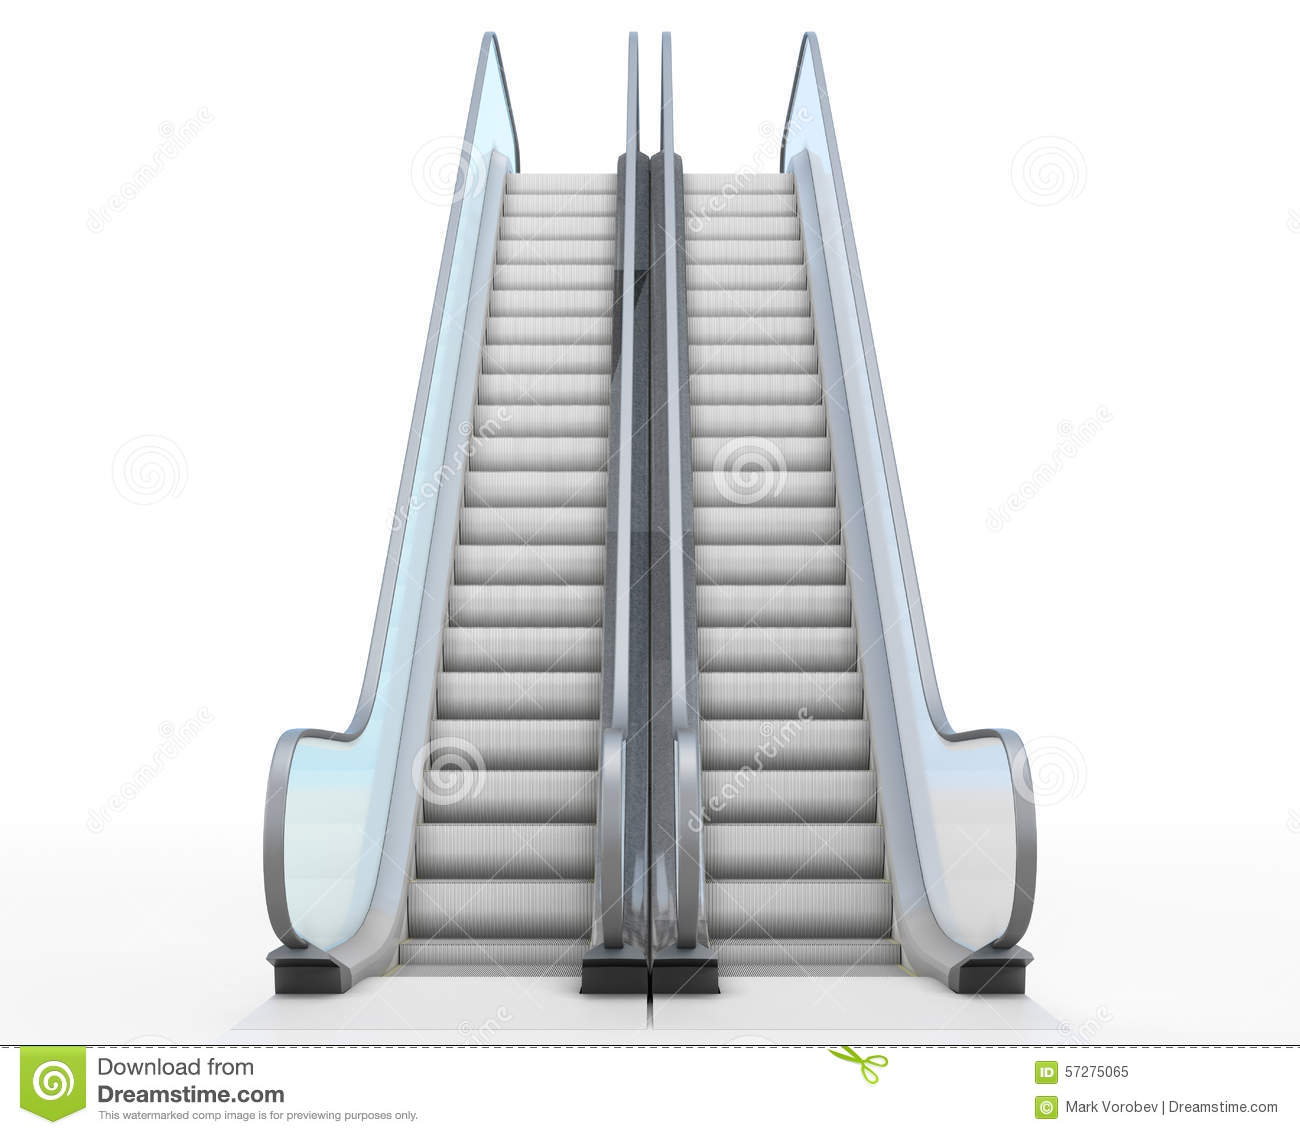 2 on the escalator from the same day last summer 6